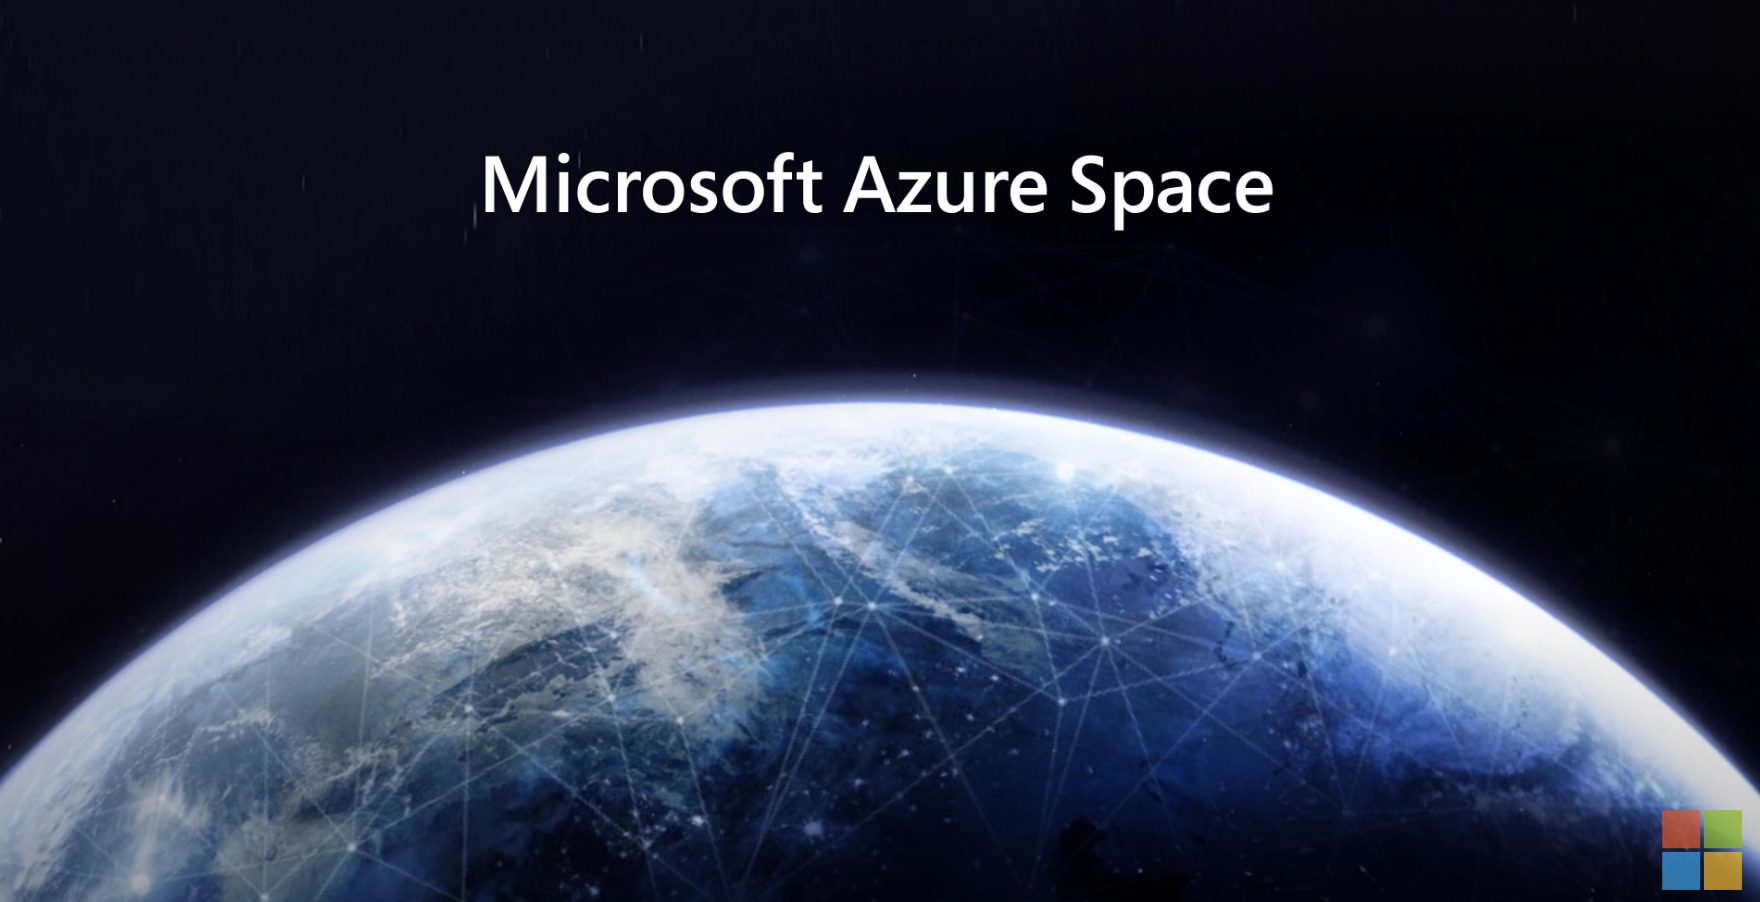 Microsoft Launches Azure Space - Partners With SpaceX, SES